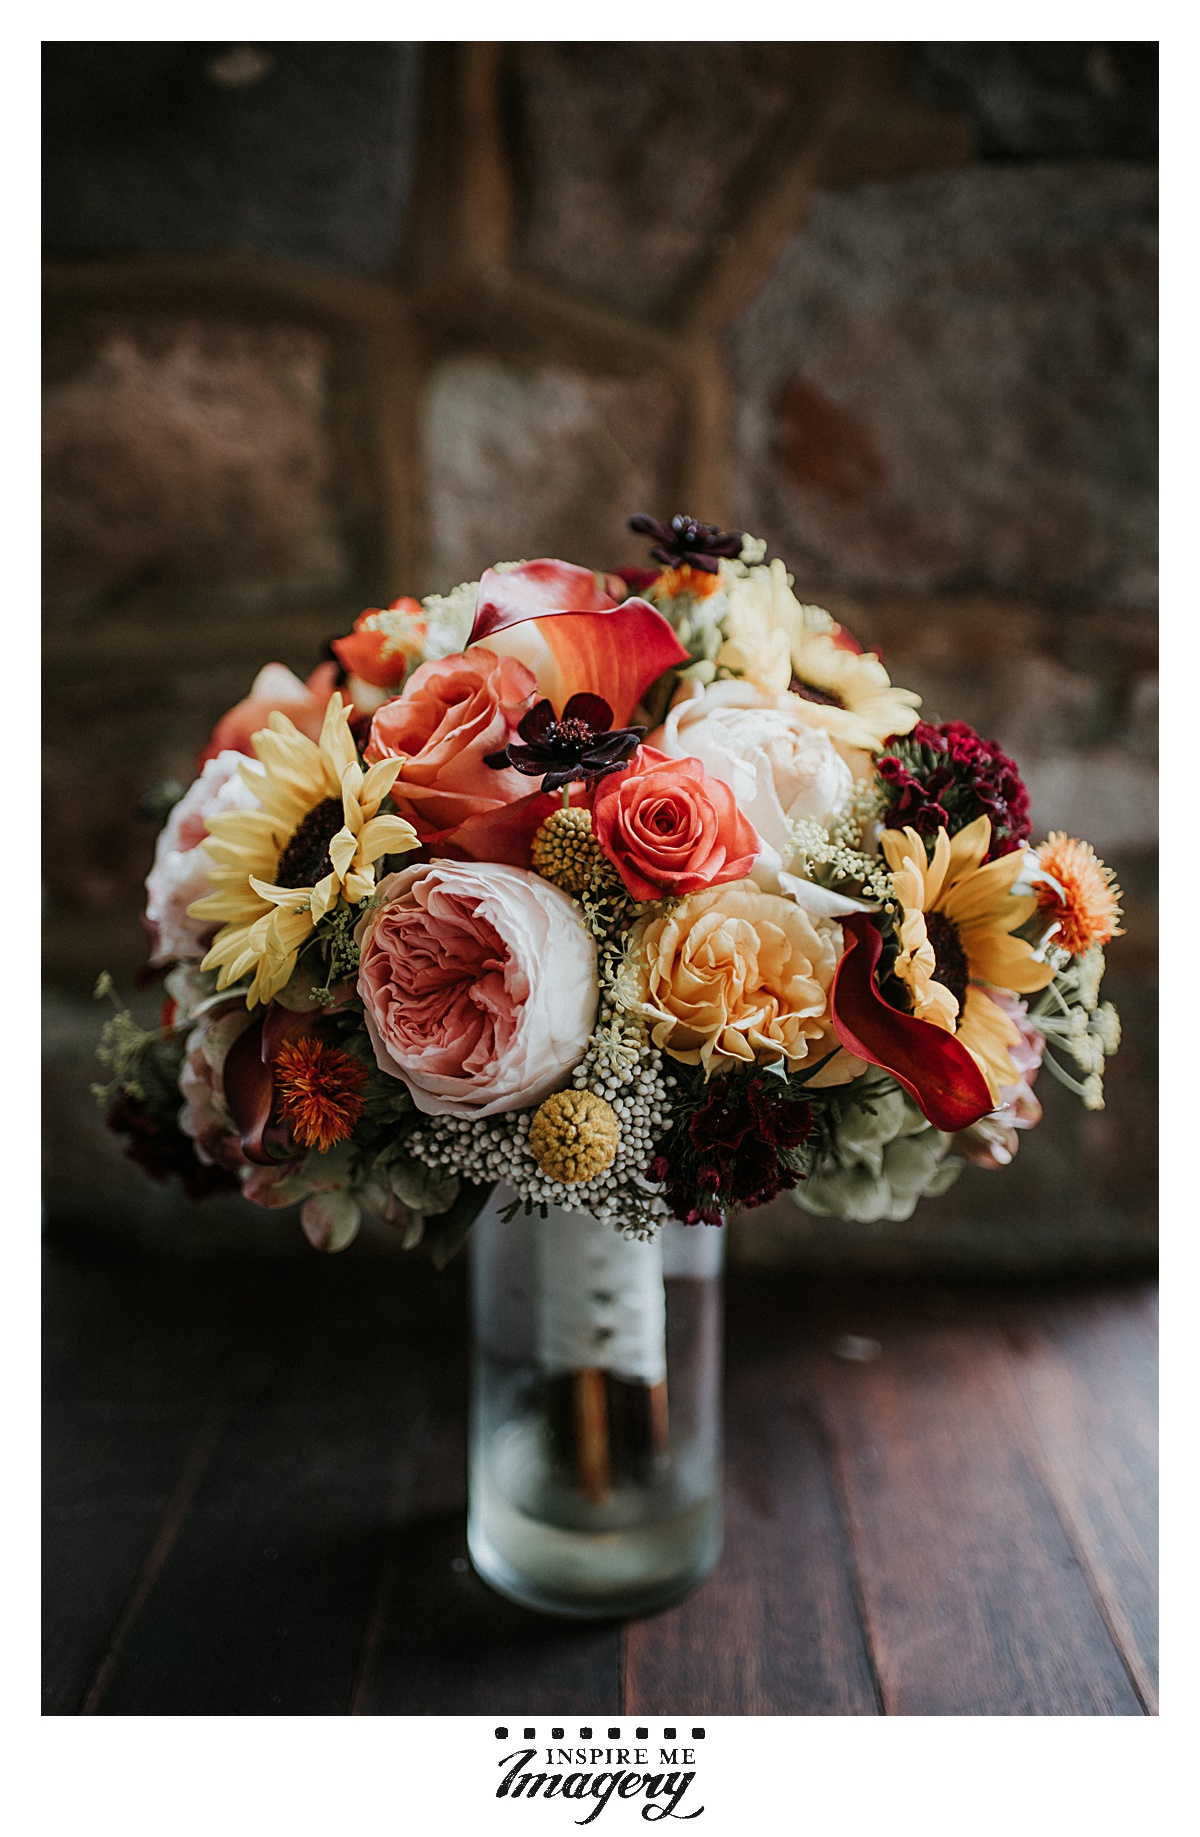 The color palettes for fall weddings are always so gorgeous with the rich reds, oranges, and purples.